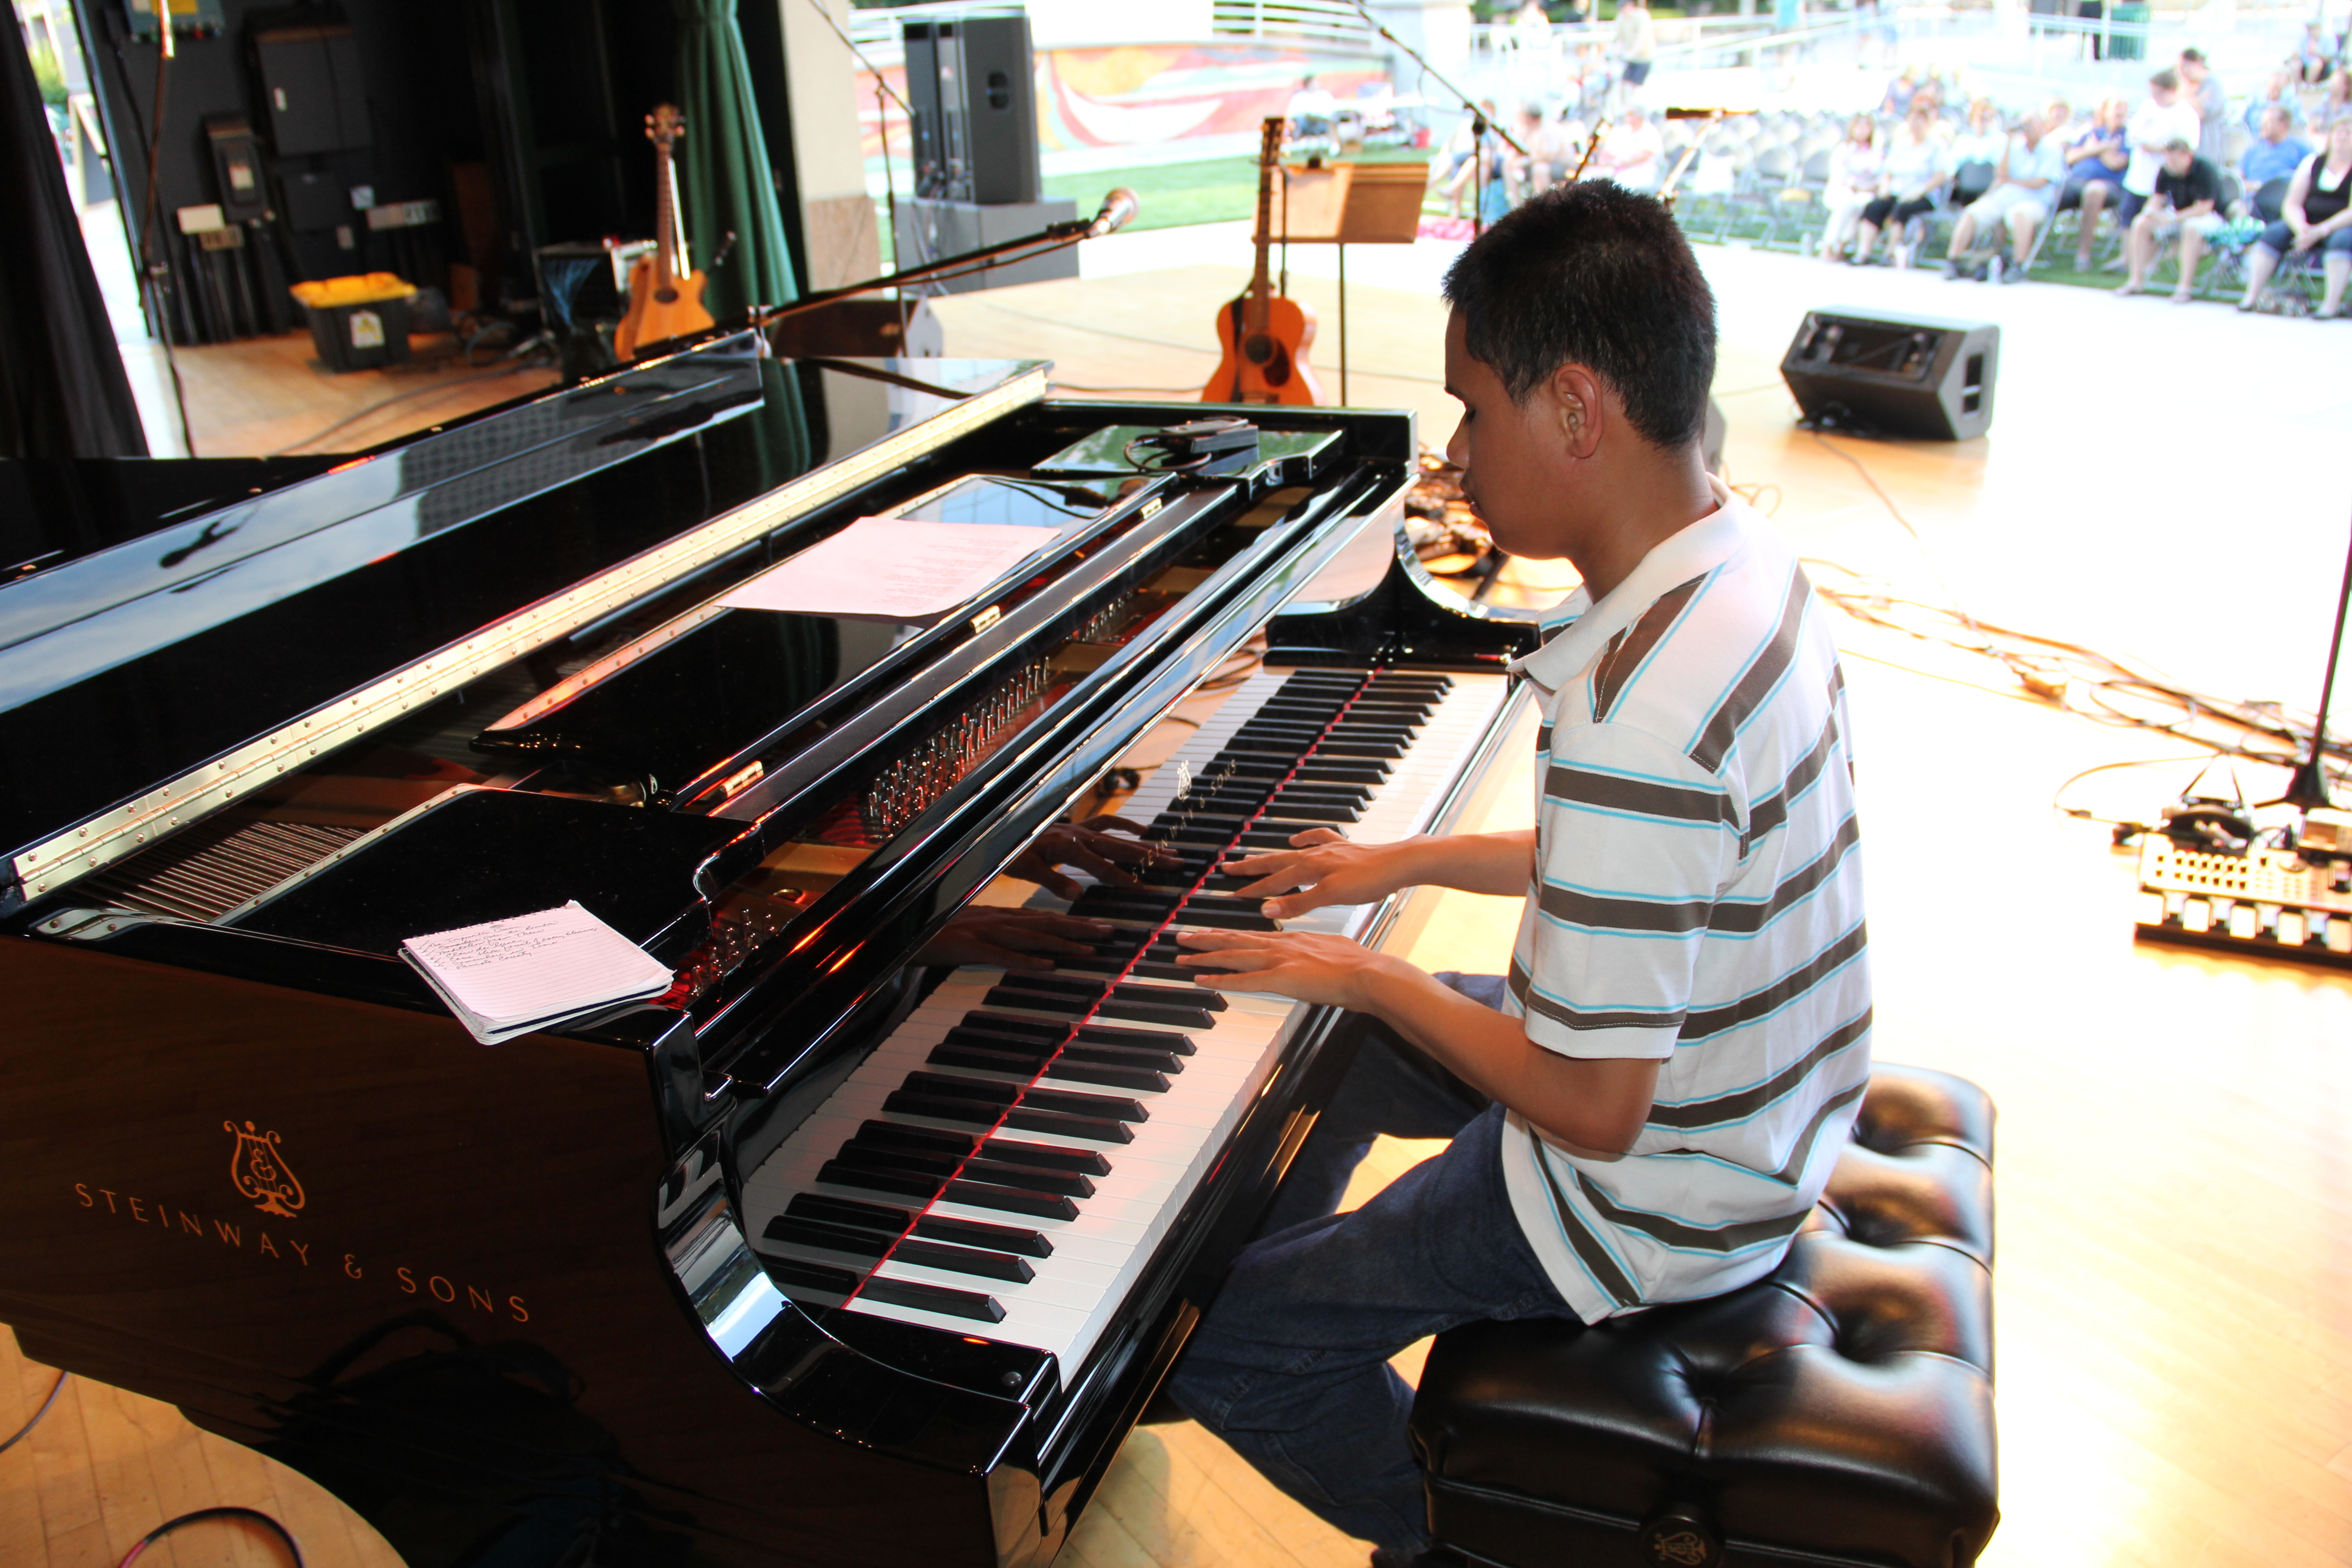 Case's musical dream: Blind piano prodigy comes to Clarkston